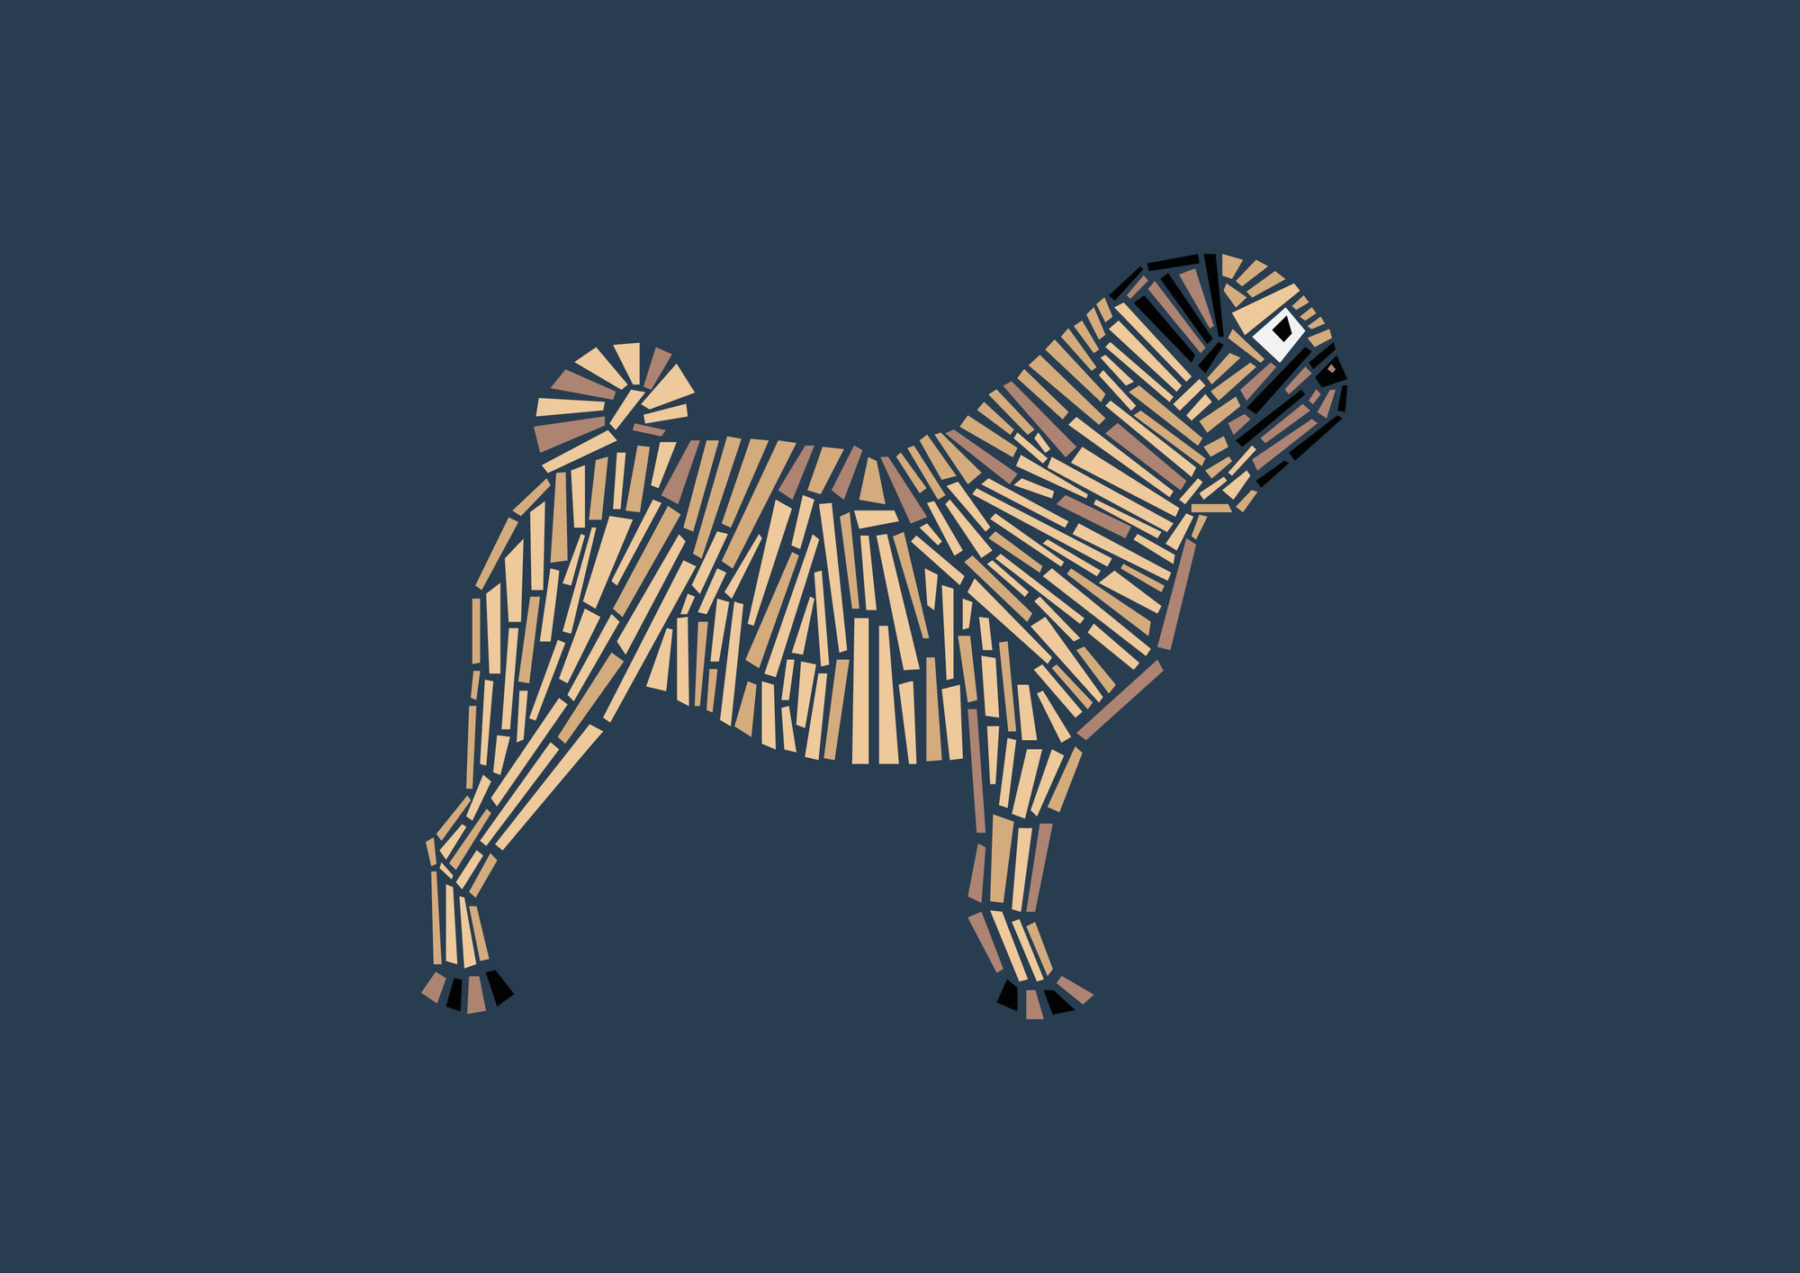 naomi turco Fifty dogs with graphic lines 20